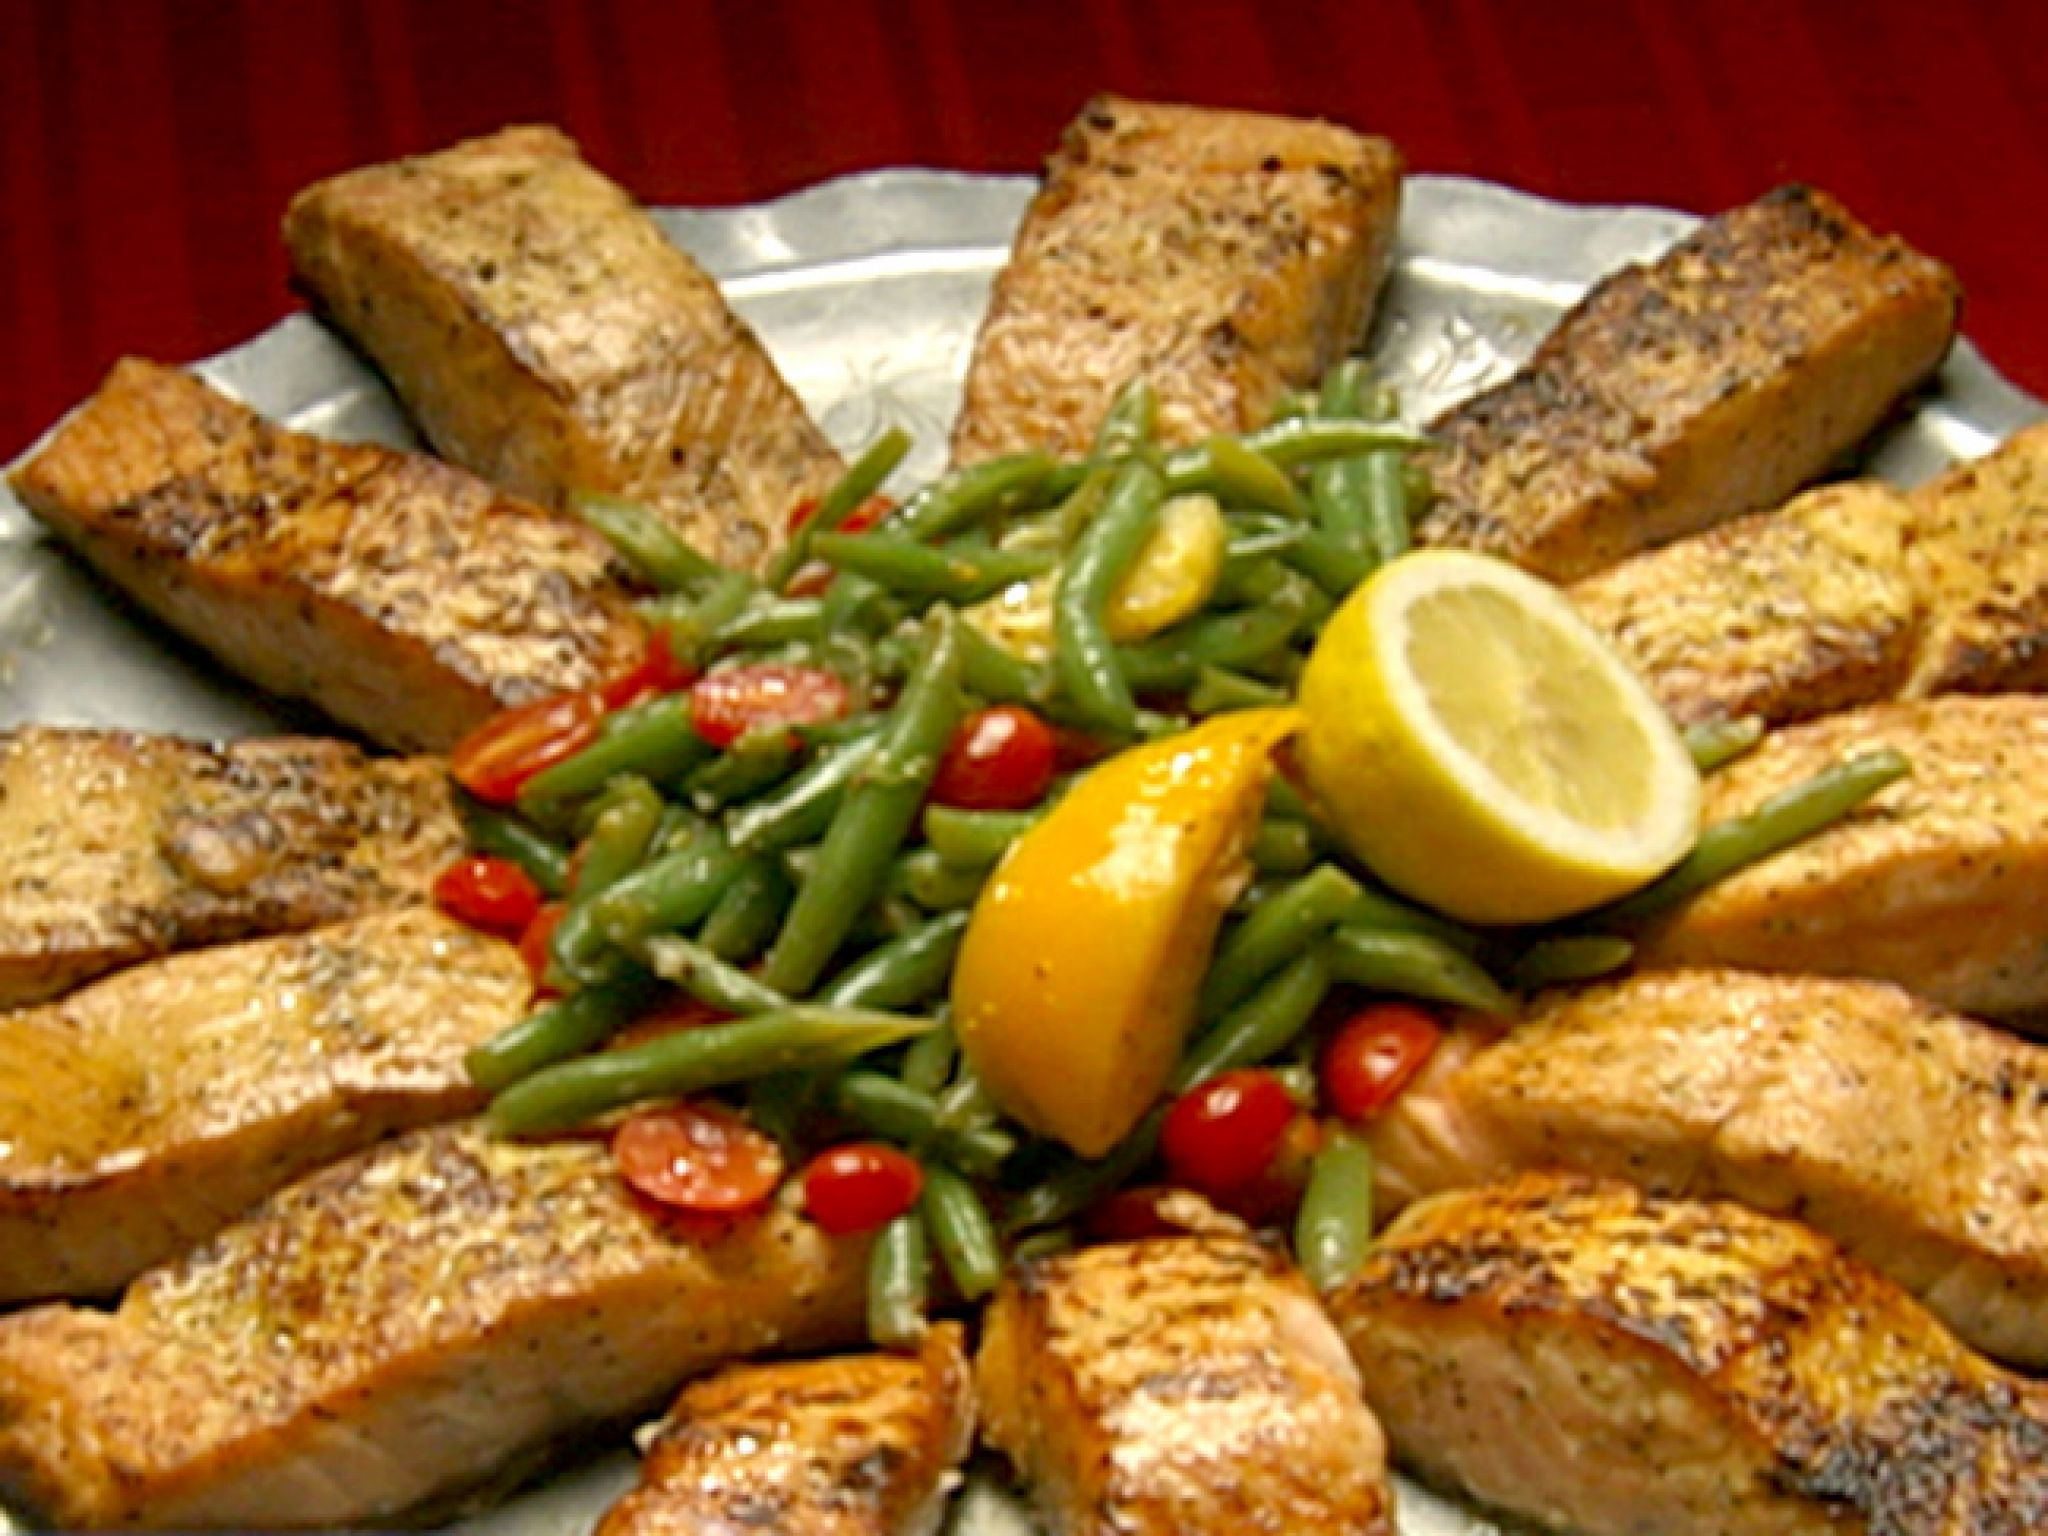 Pan seared salmon with haricots verts salad recipe salmon pan seared salmon with haricots verts salad meal recipesrecipes dinnersalad forumfinder Gallery